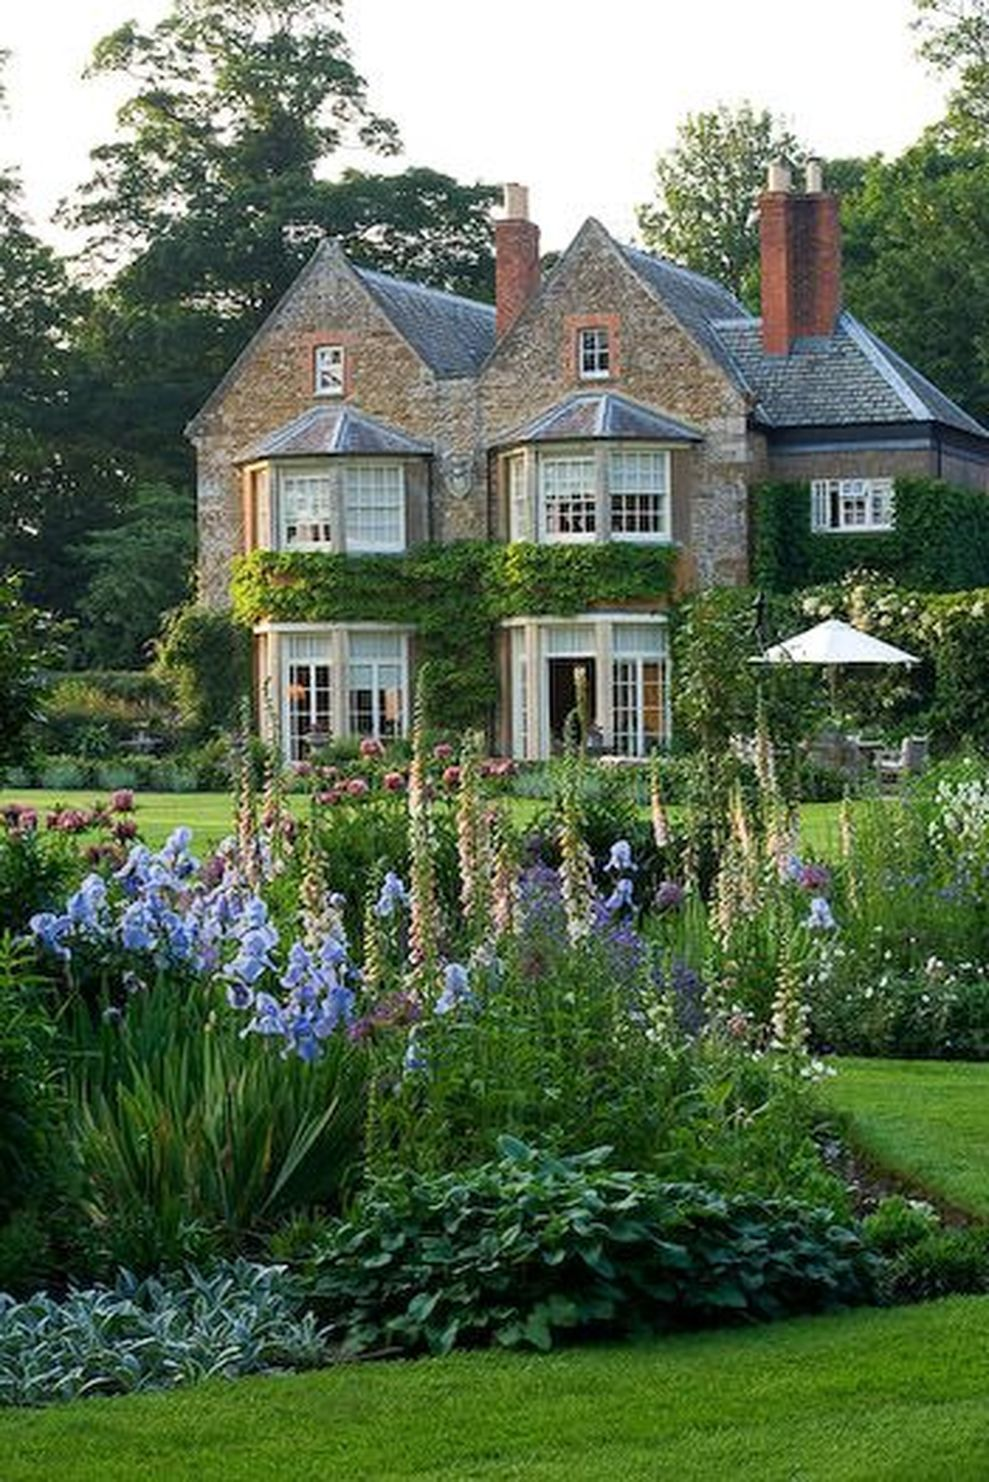 68 beautiful french cottage garden design ideas french on gorgeous modern farmhouse entryway decorating ideas produce a right one id=27438